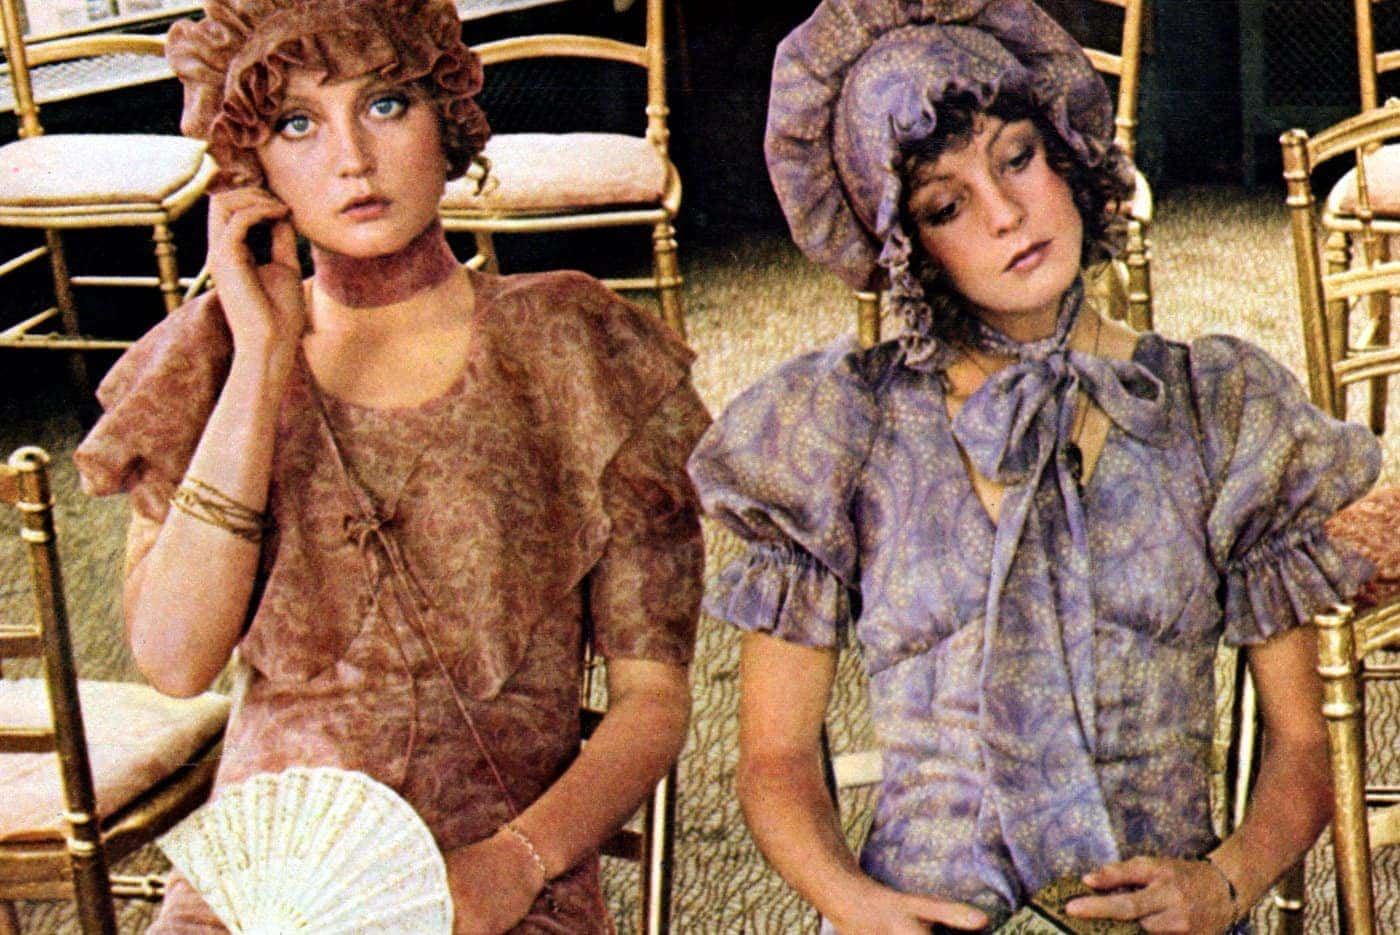 Vintage Biba clothes The super-trendy women's fashions from the 1970s